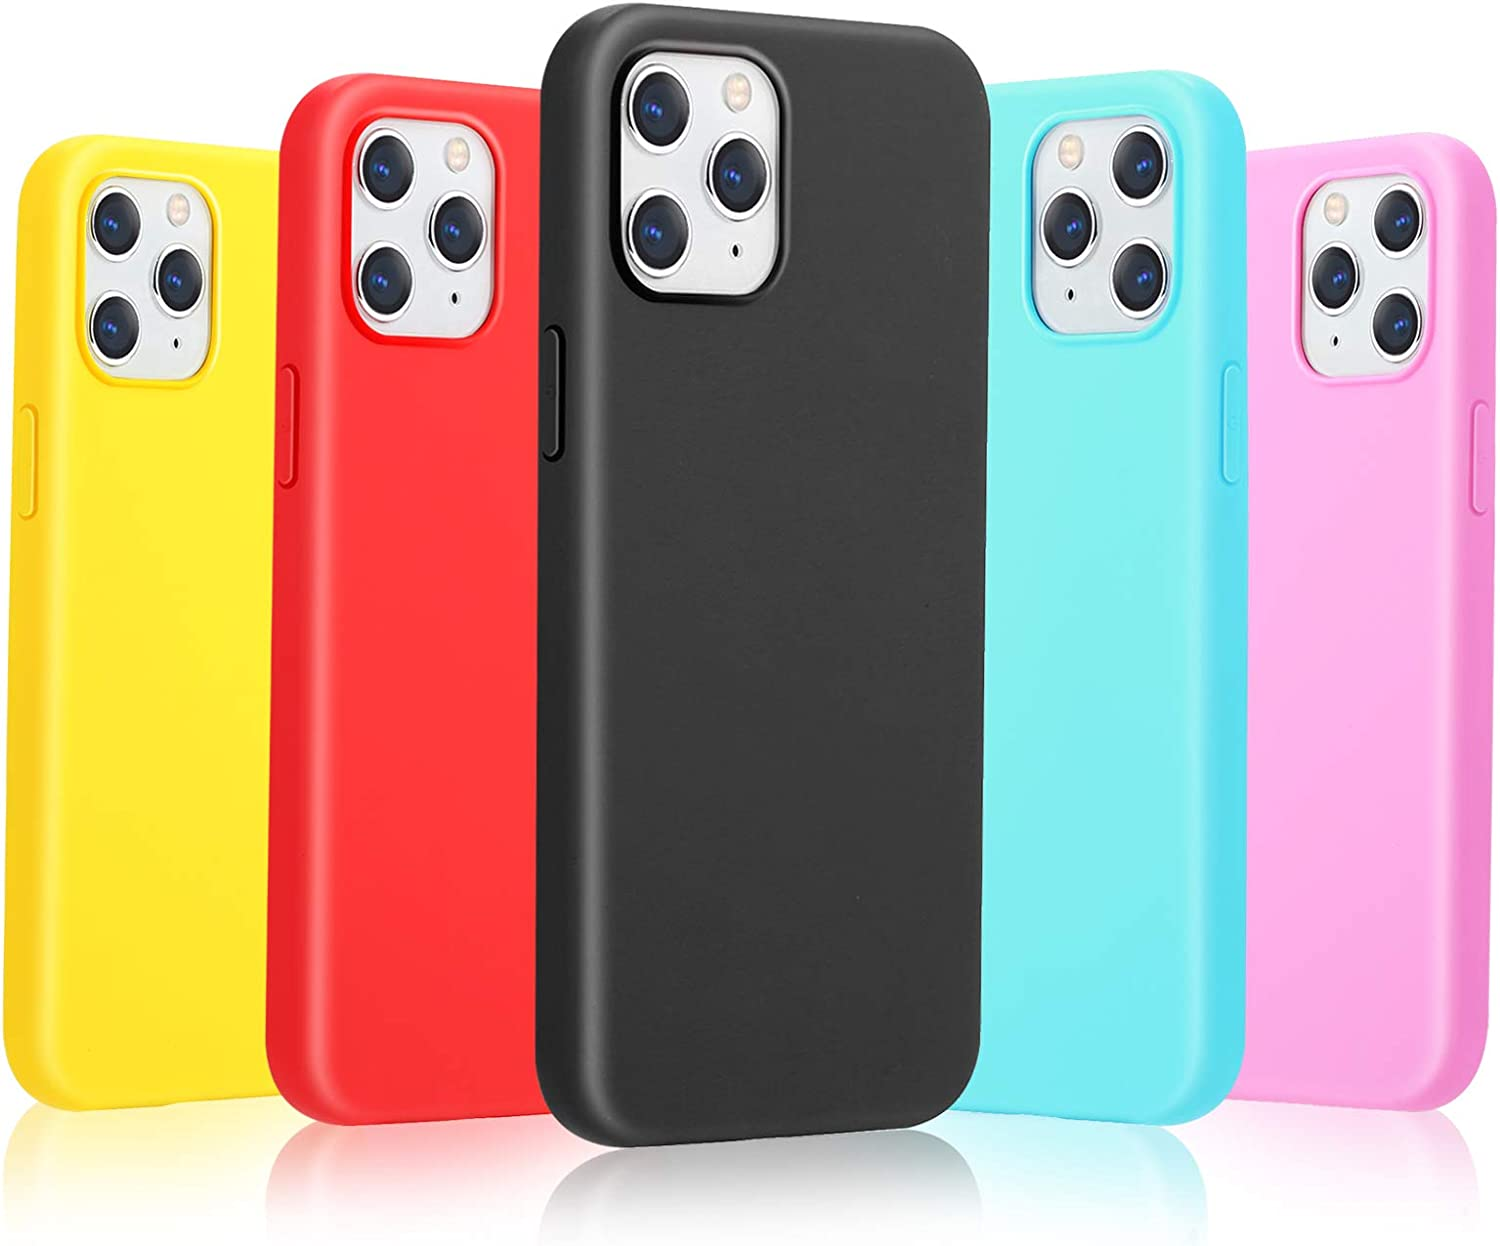 Pofesun Compatible with iPhone 12 Pro Max 6.7'' 2020, Silicone Soft Gel Rubber Full Body Protection Shockproof Phone Case Cover for iPhone 12 Pro Max (Black,Red,Rose,Yellow,Blue)